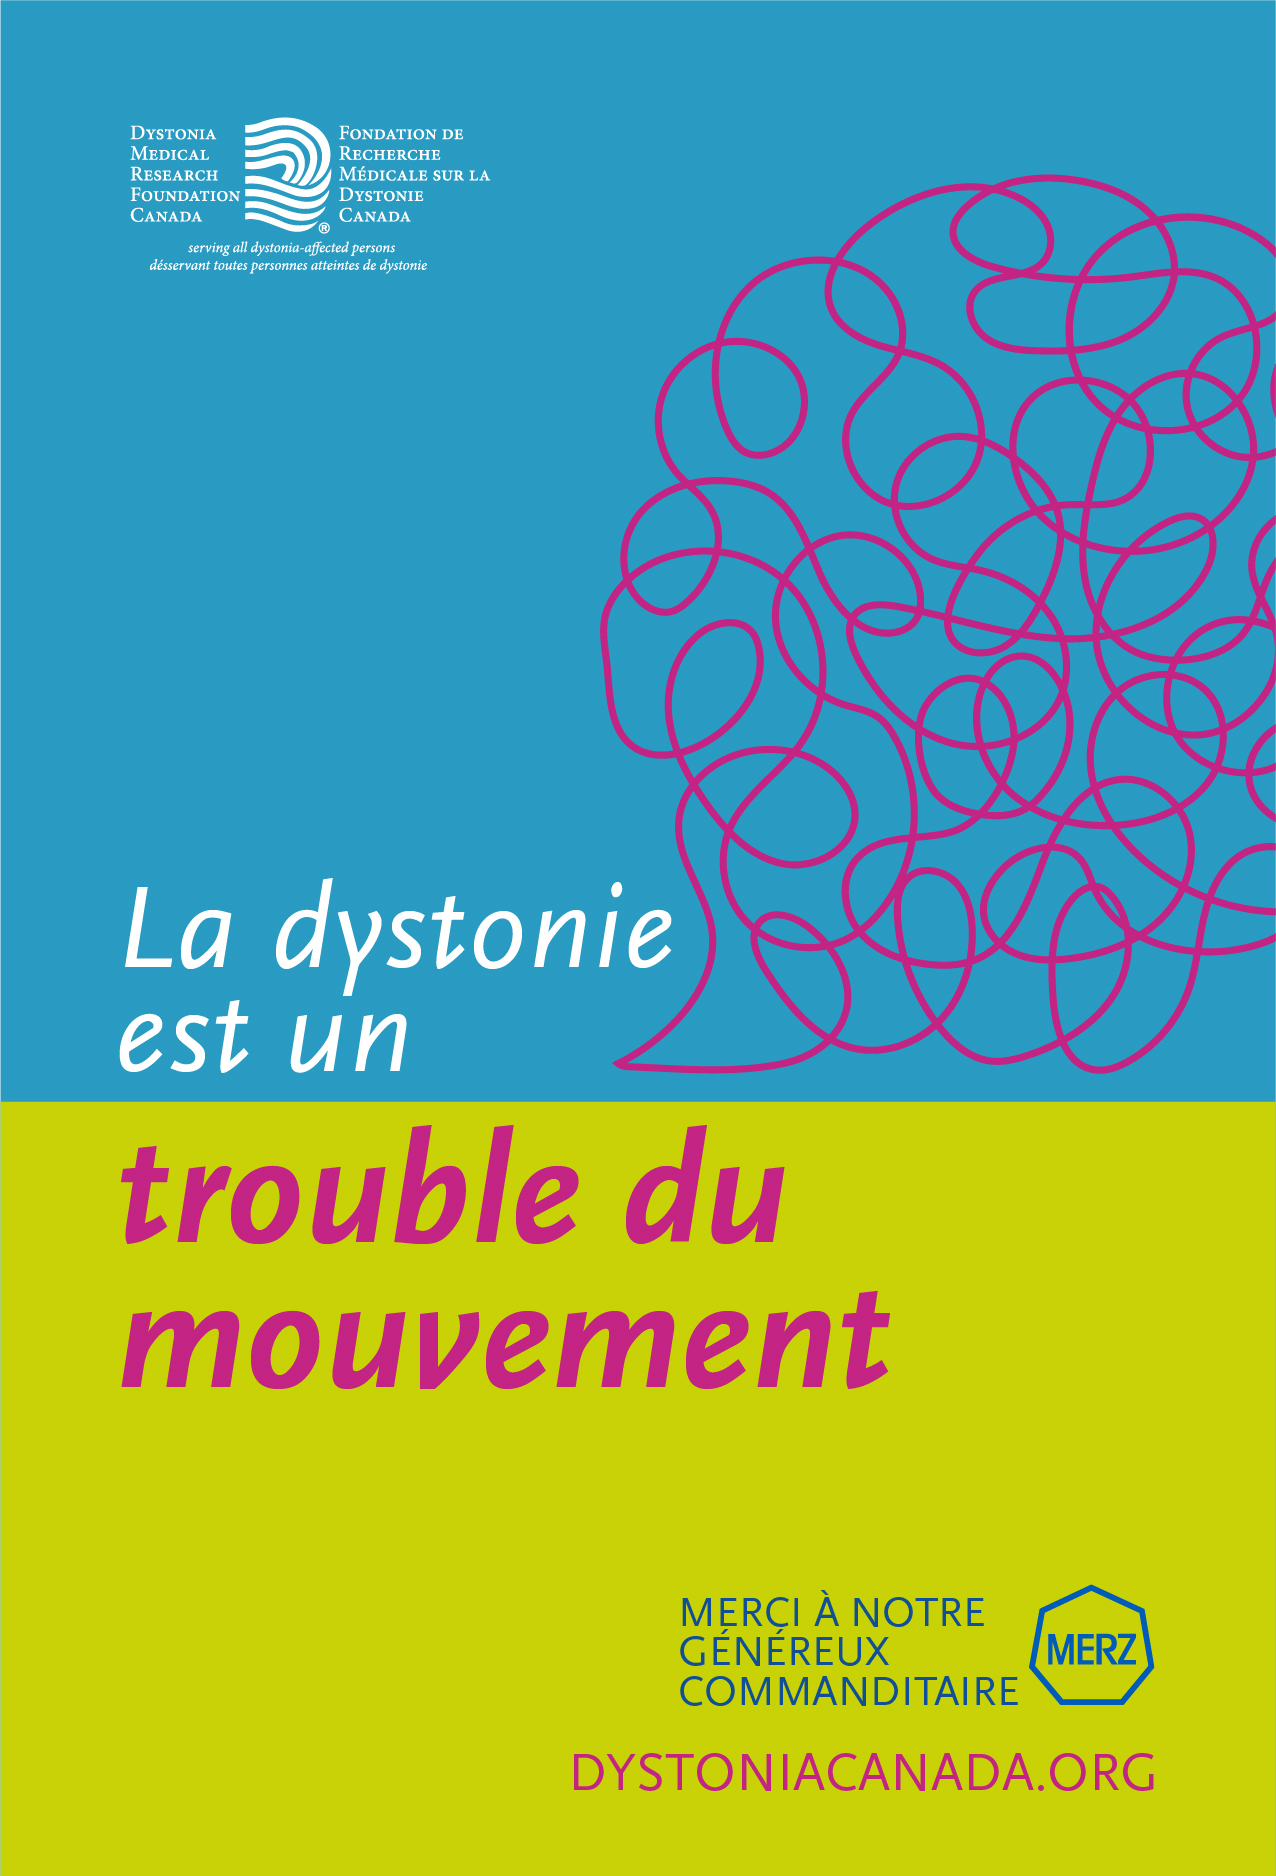 dystonia is a movement disorder